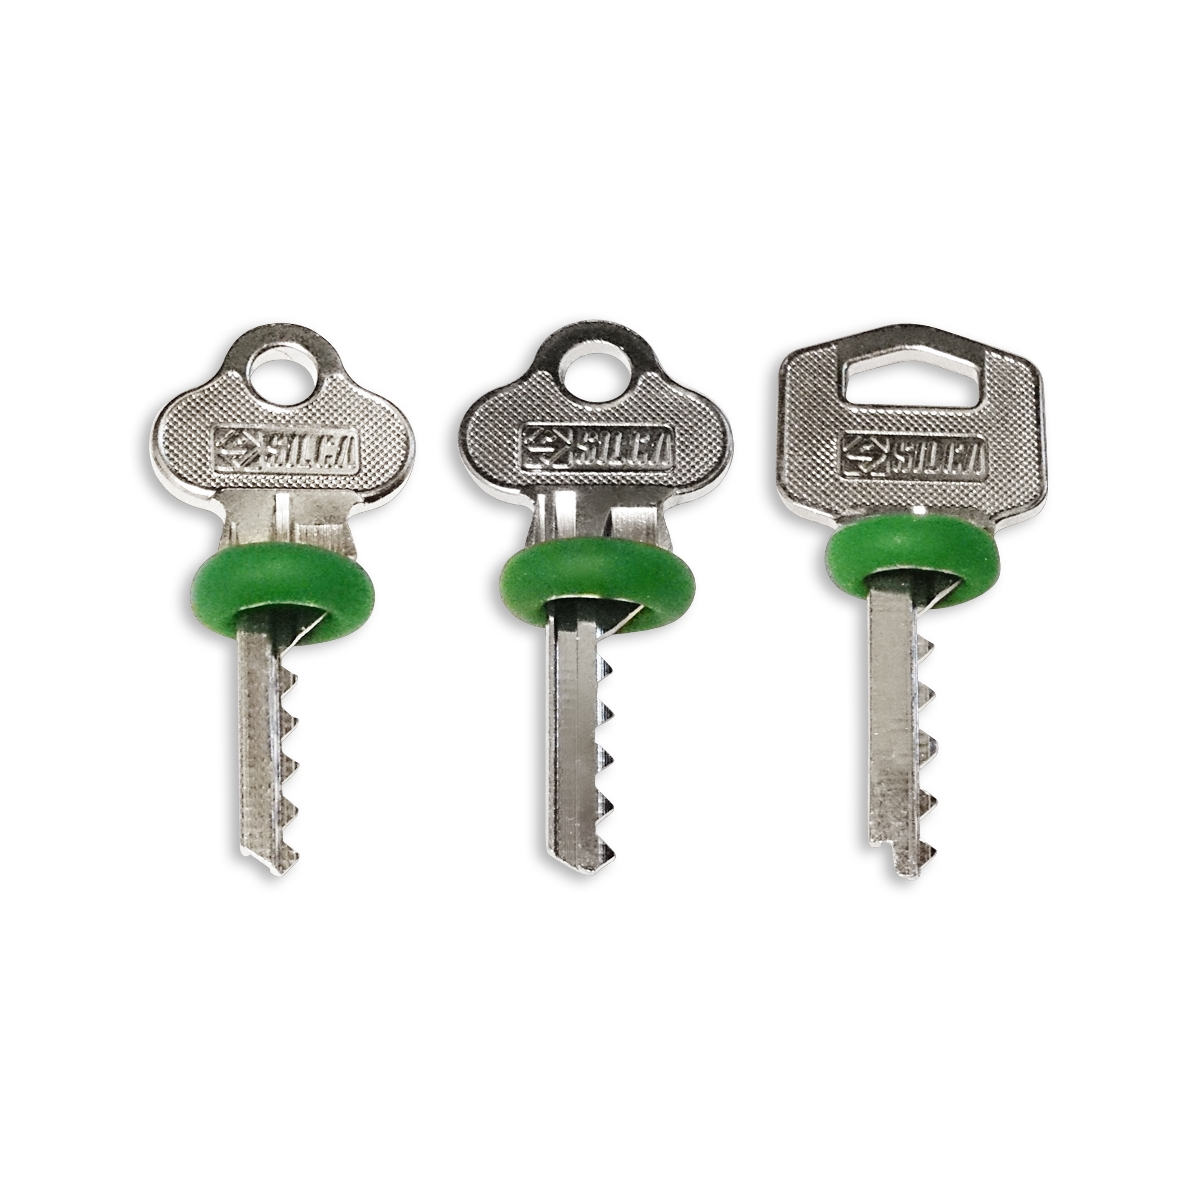 Lock Pick Key >> Australian Bump Key Set – Small | Lock Picks Australia